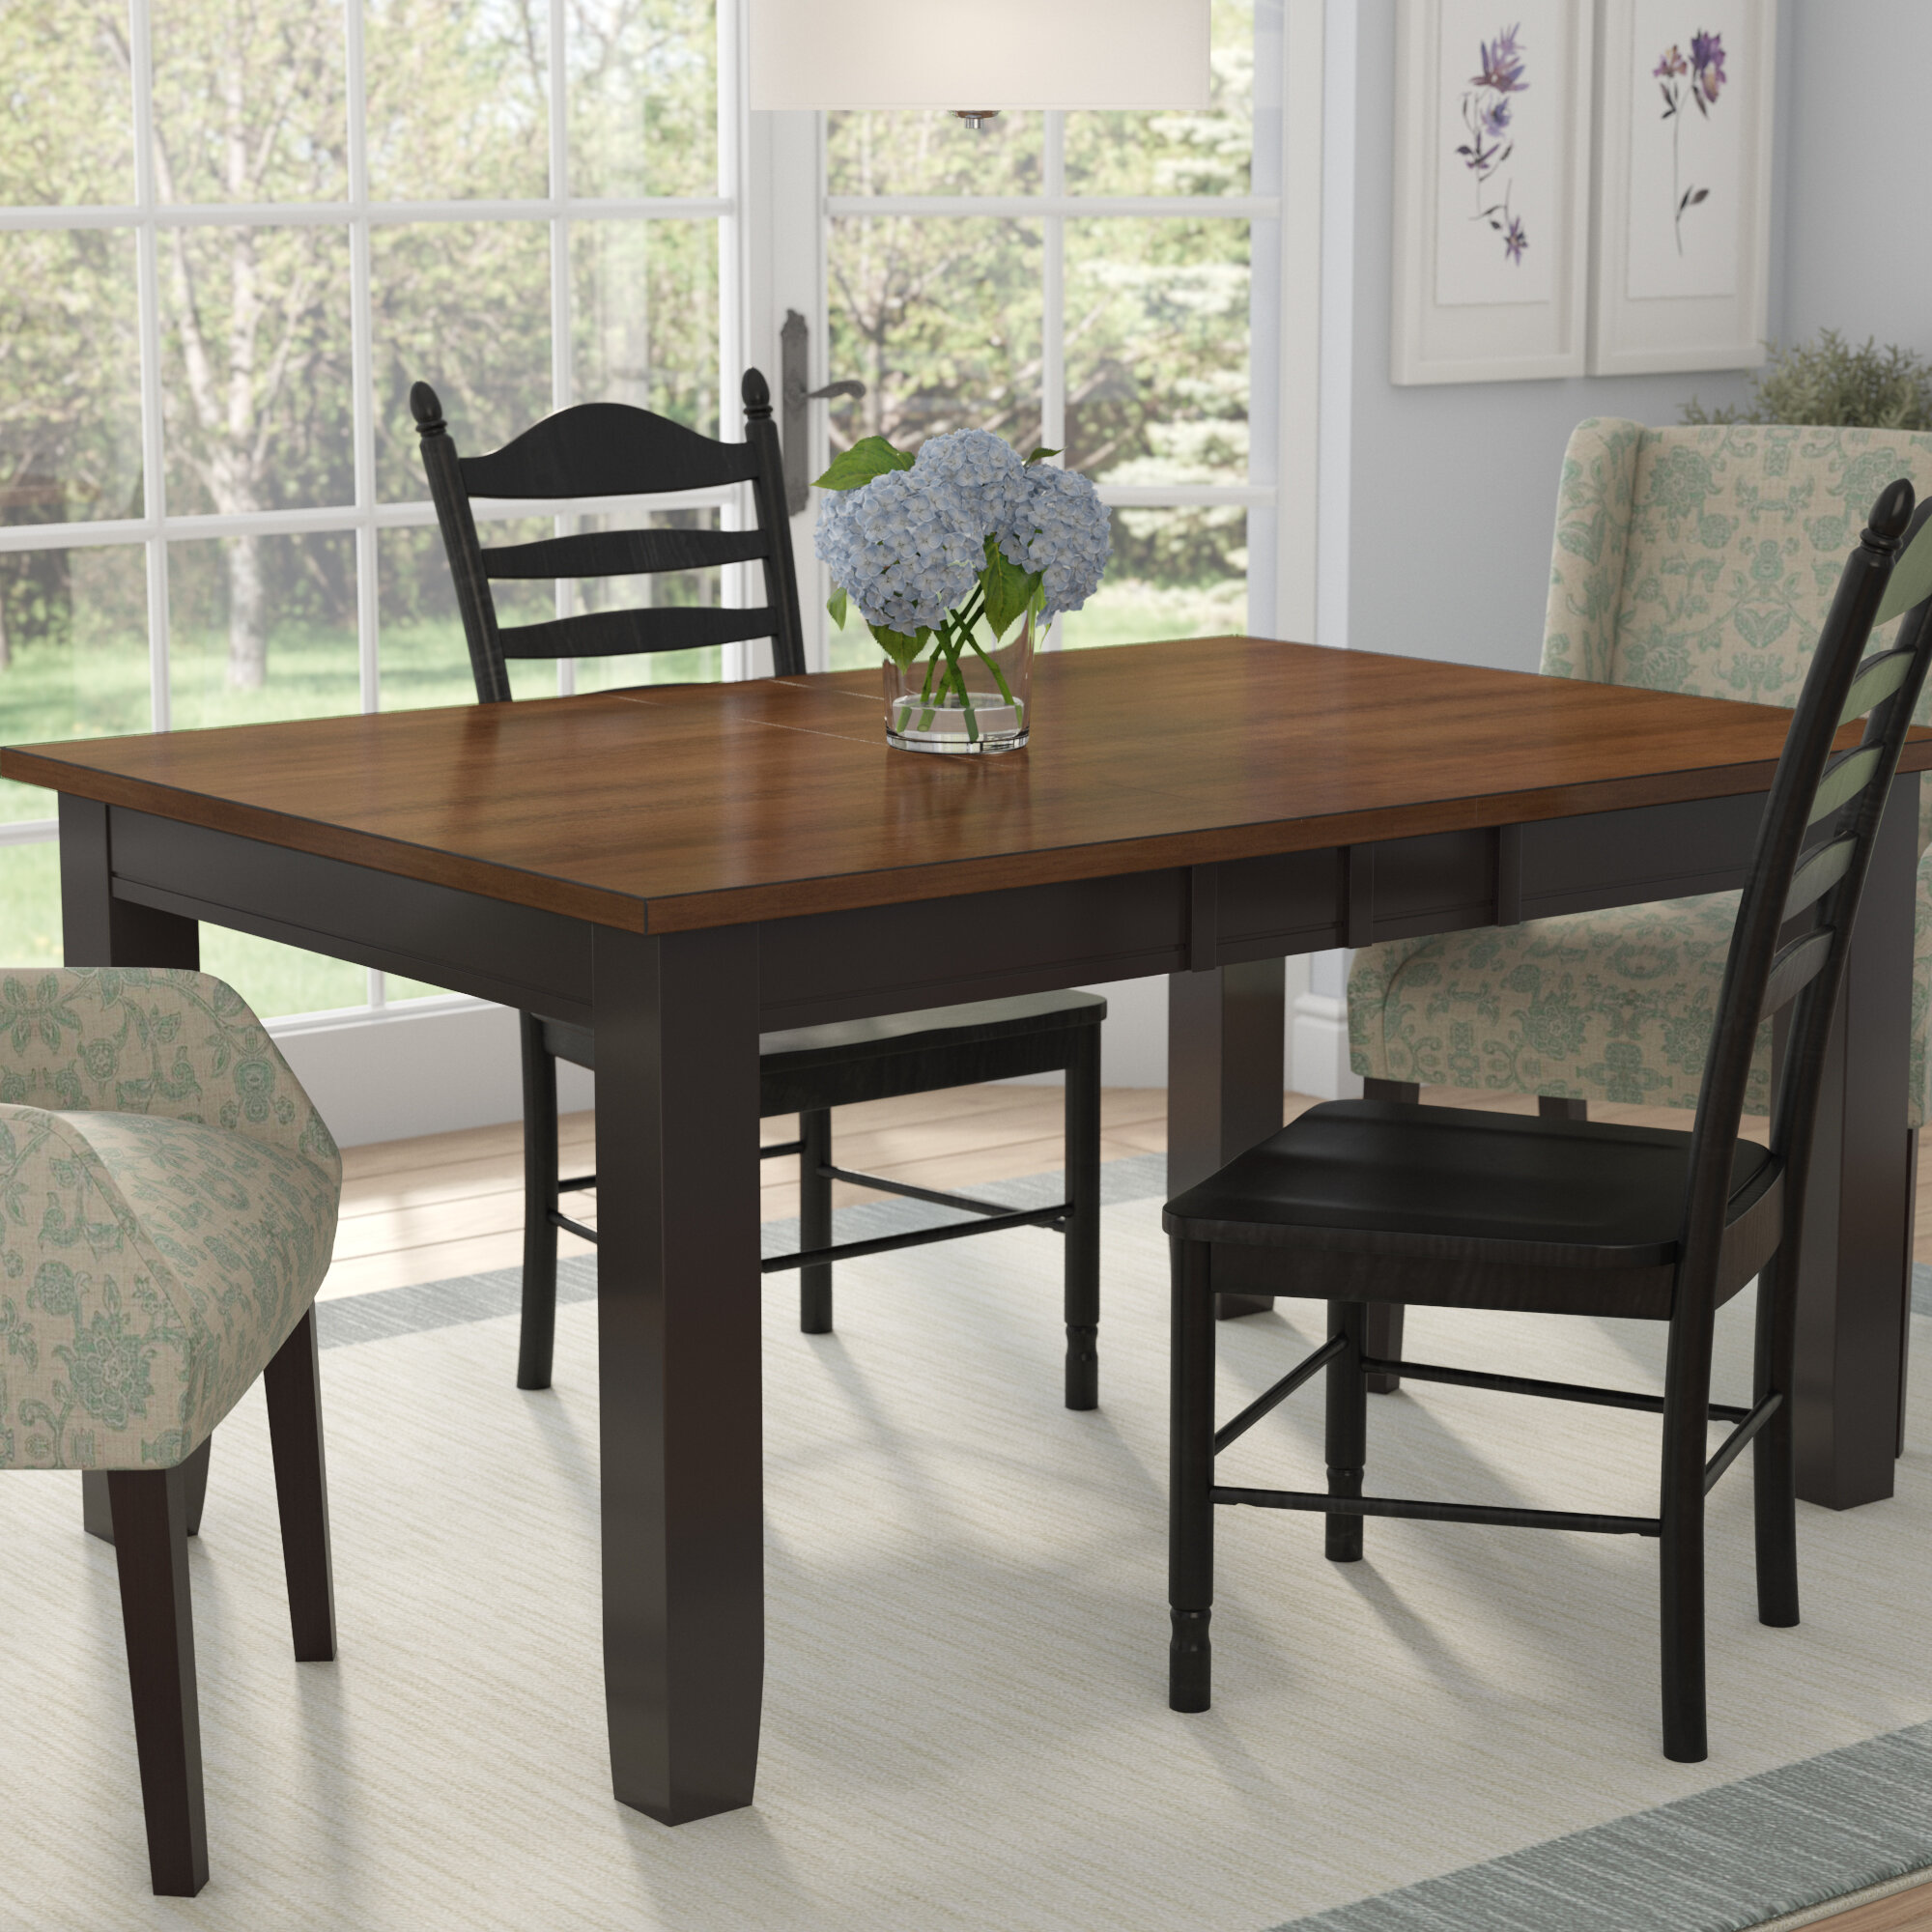 extendable dining room table Three Posts Griffey Extendable Dining Table & Reviews | Wayfair extendable dining room table